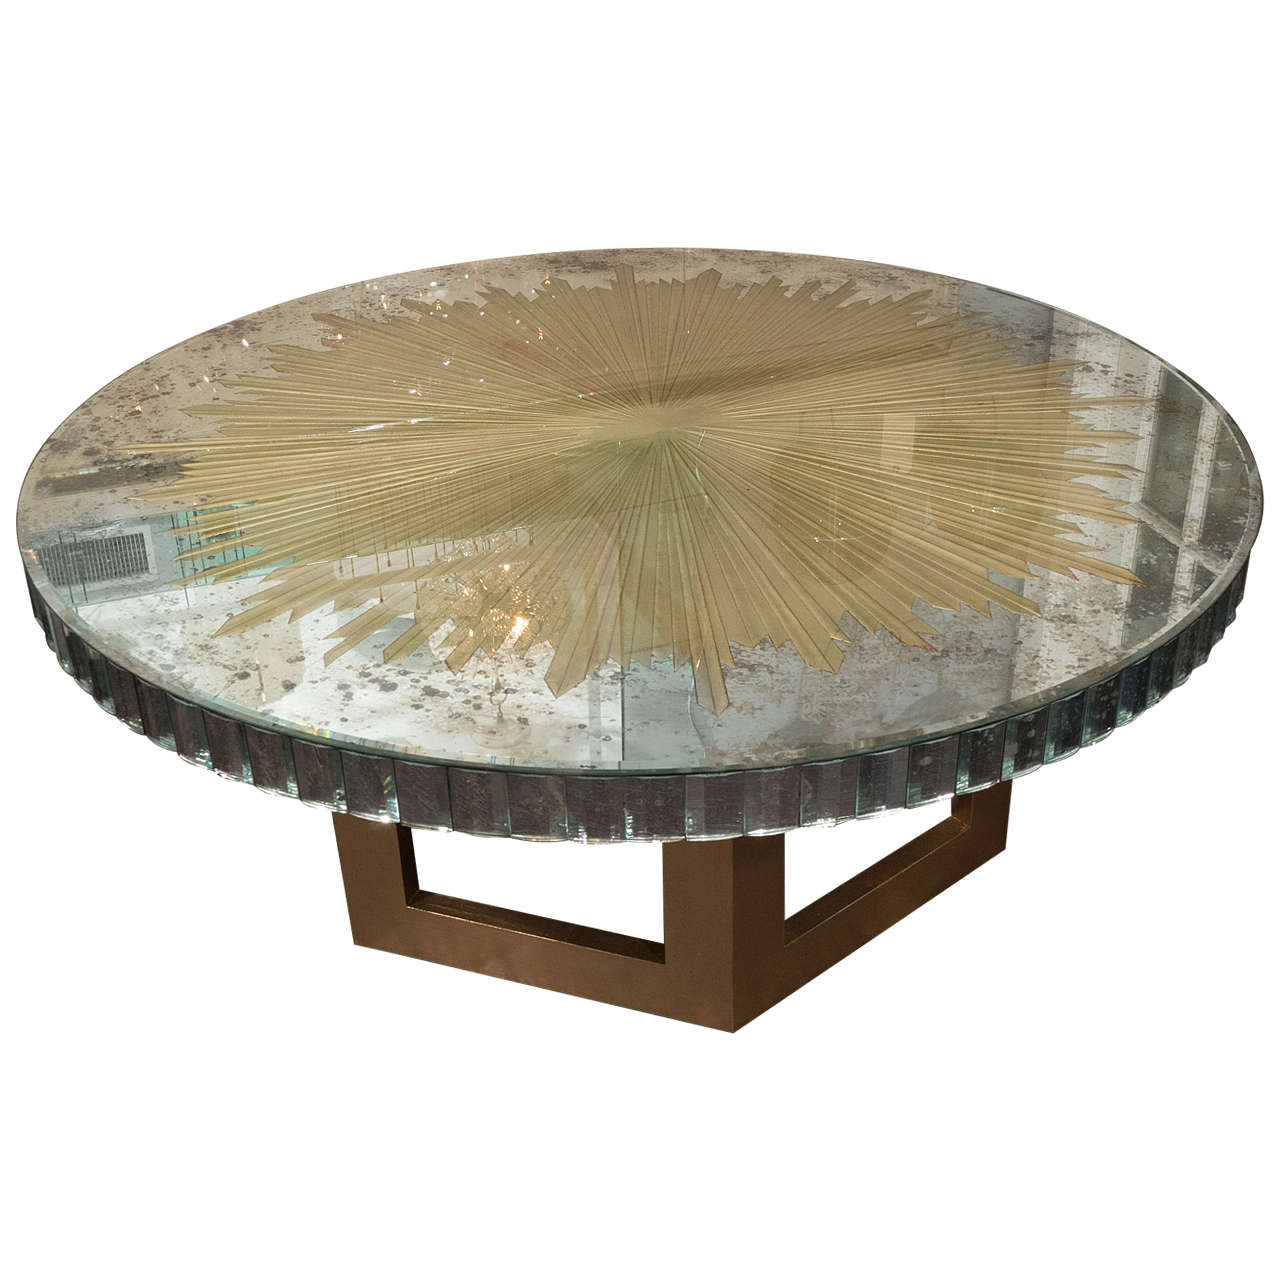 vintage glomis mirrored glass table with gold leafed